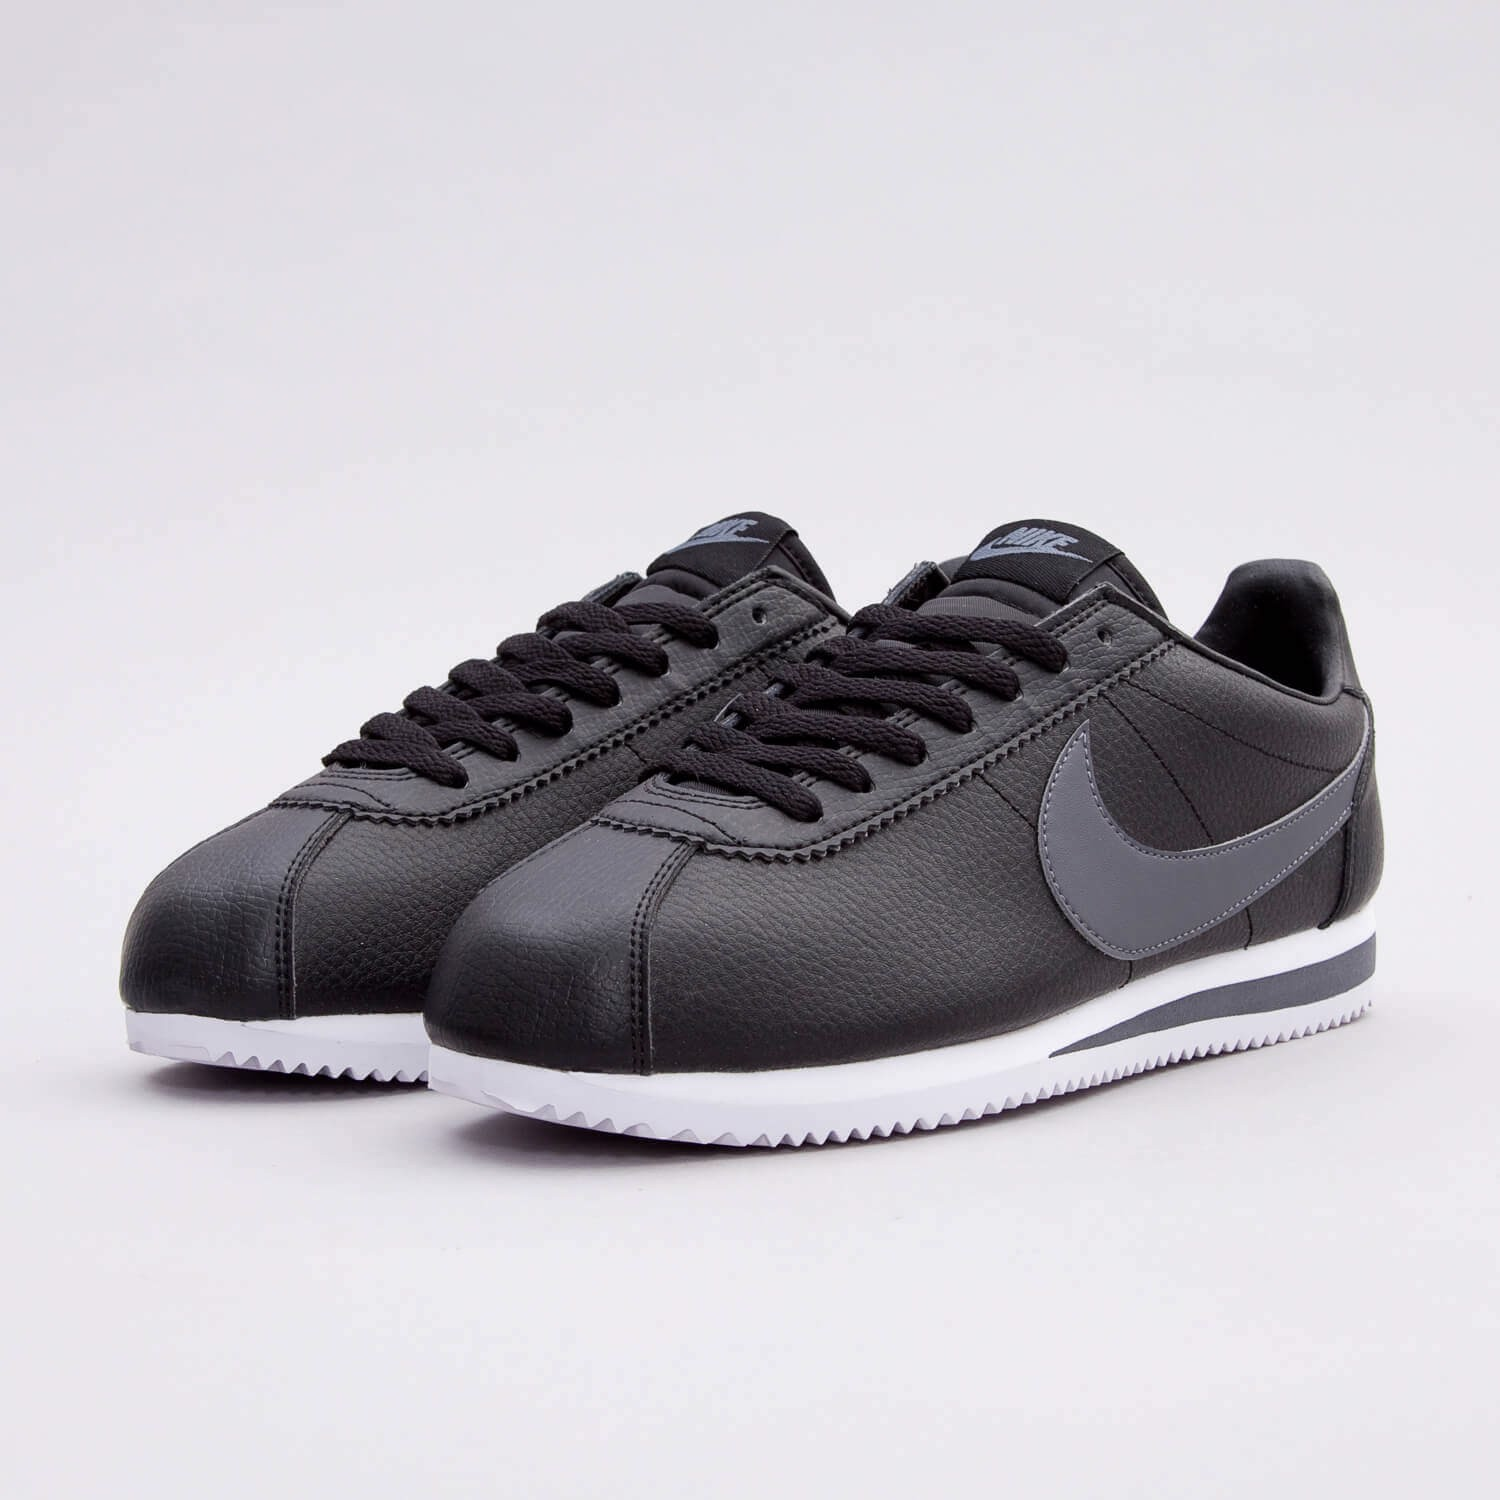 Nike - Giày thời trang thể thao nam Classic Cortez Leather FW21-7411